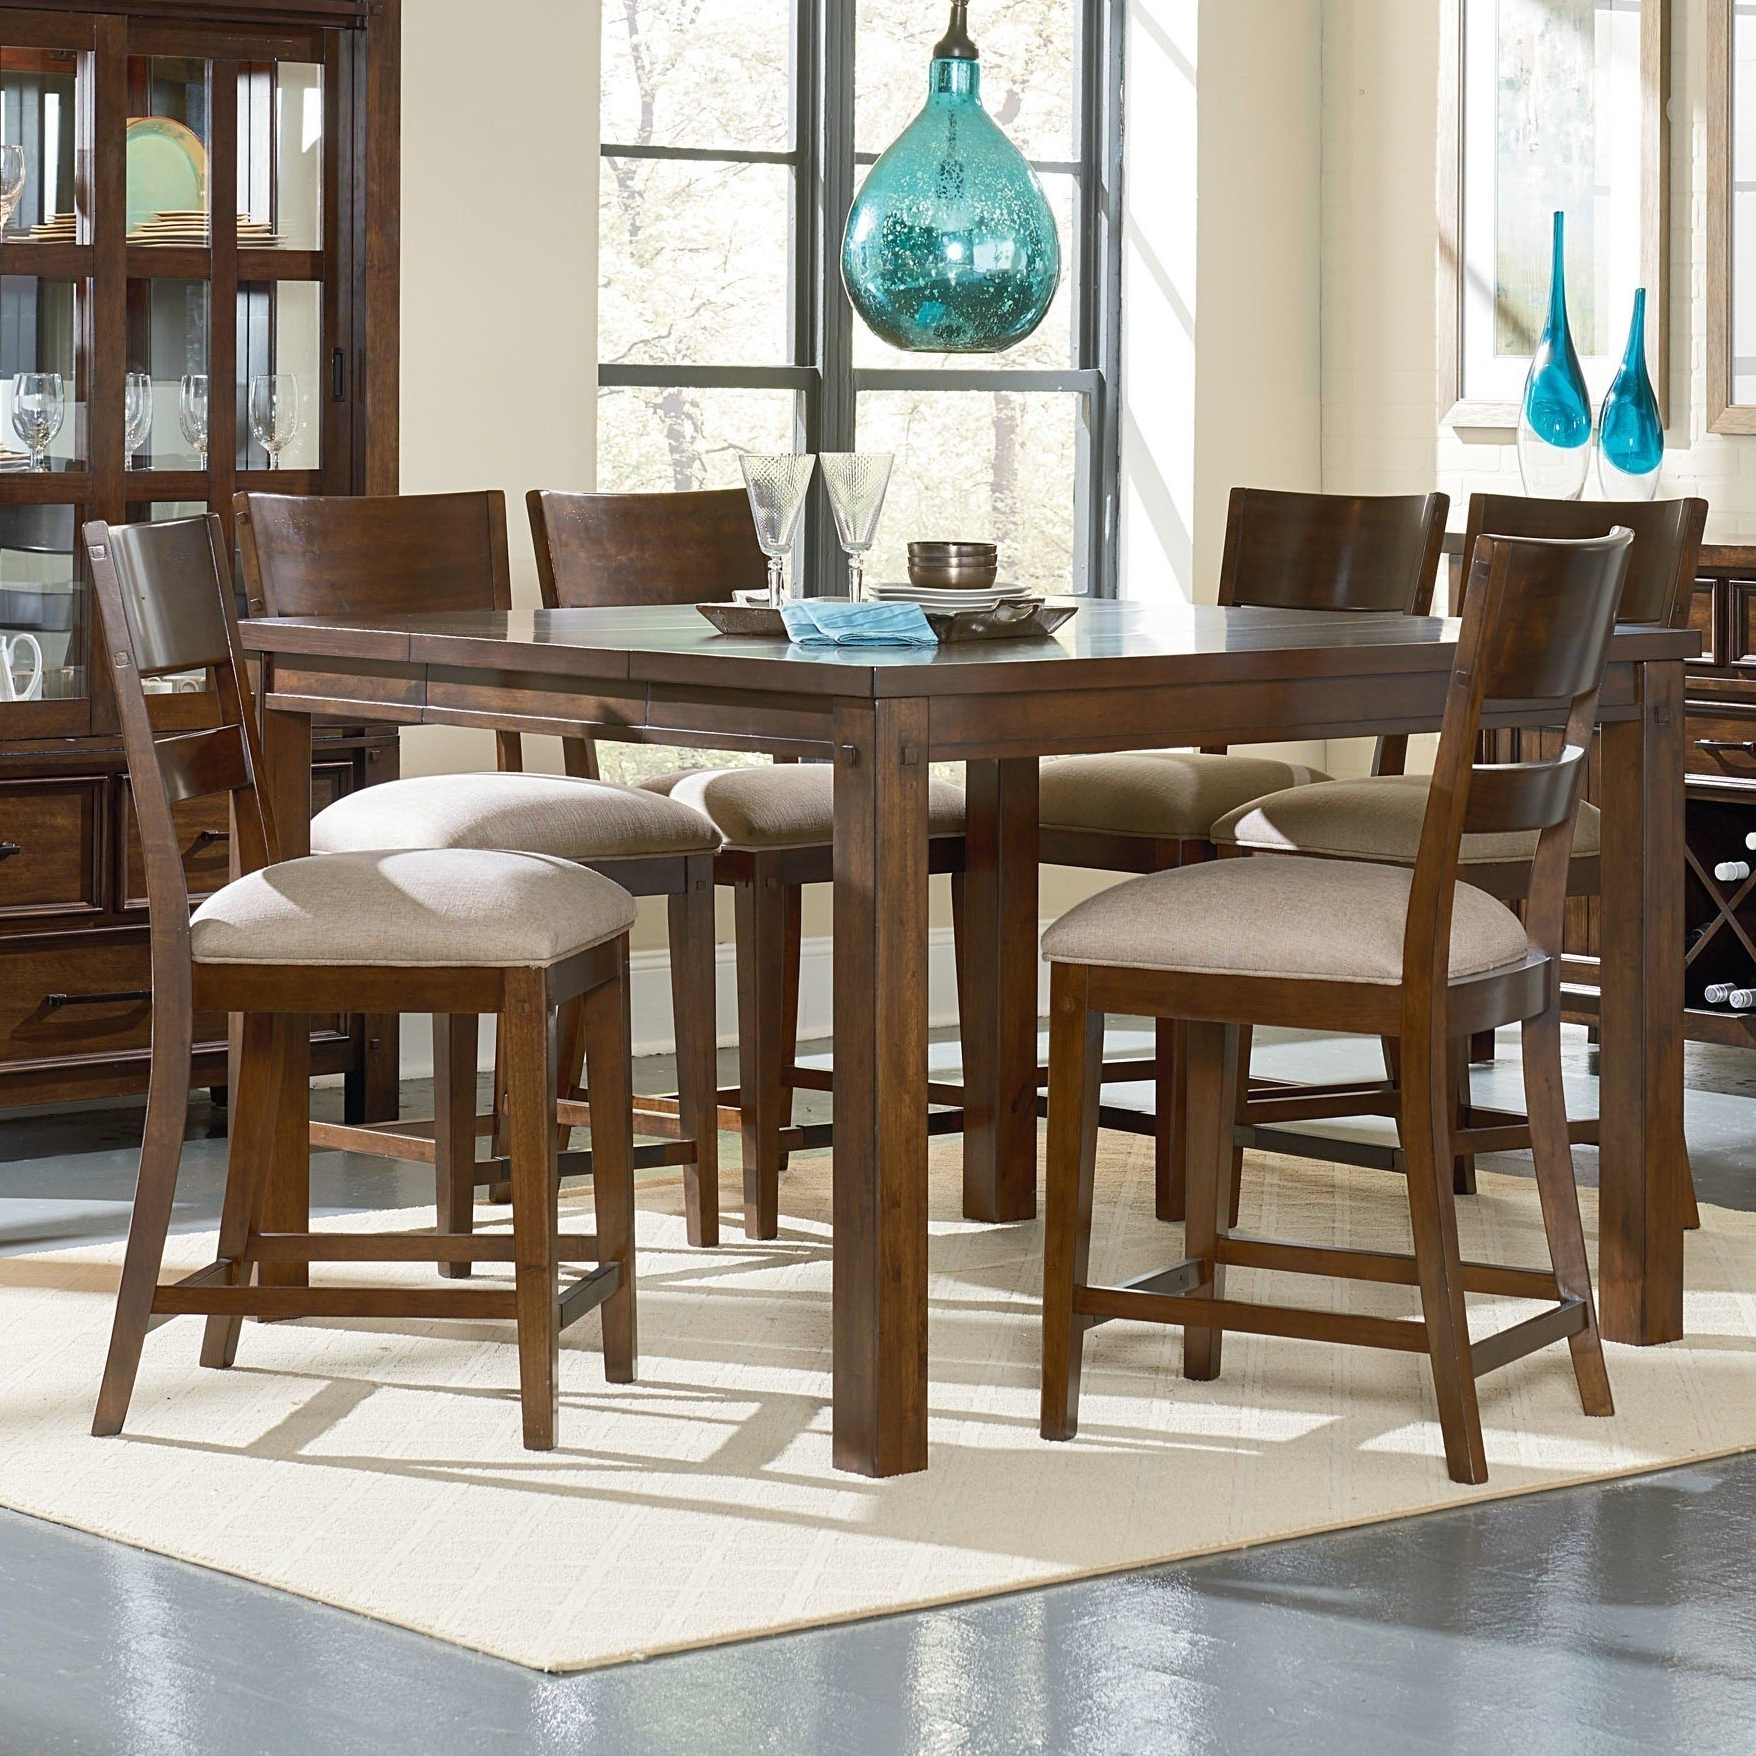 Most Up To Date Parquet 7 Piece Dining Sets Inside Square Dining Table For 6 – Visual Hunt (Gallery 20 of 25)